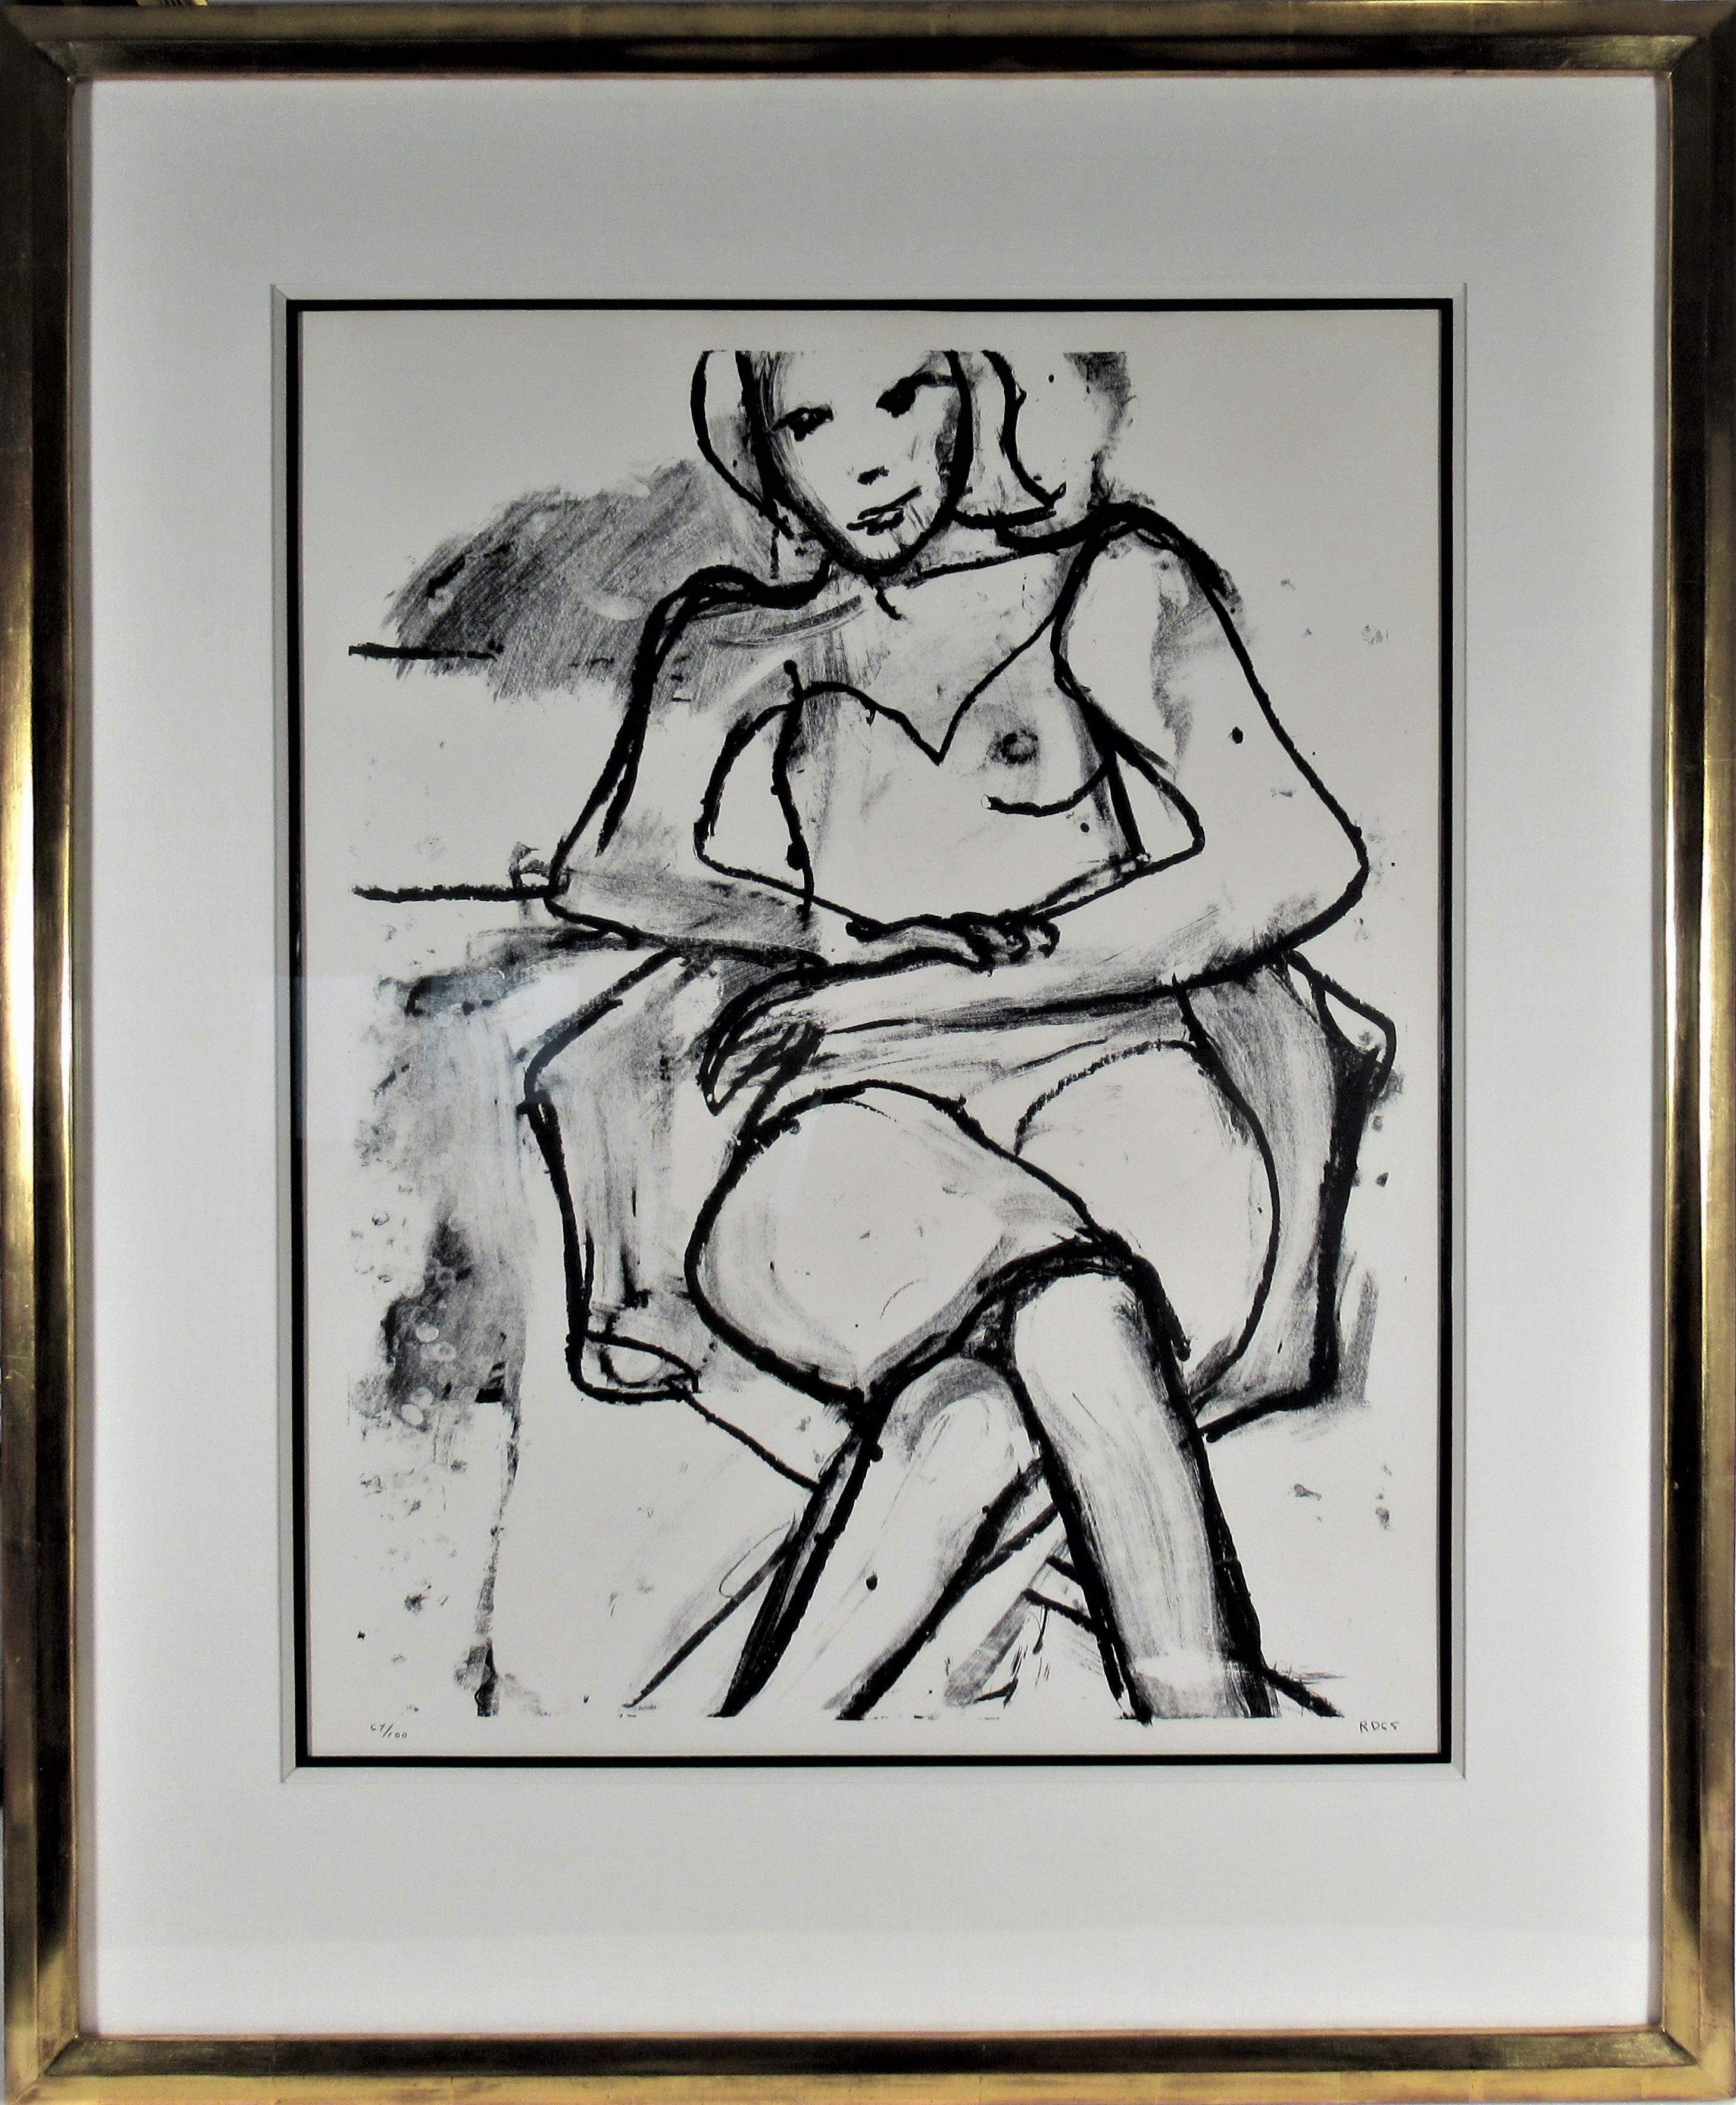 Seated Woman (With Legs and Arms Crossed)